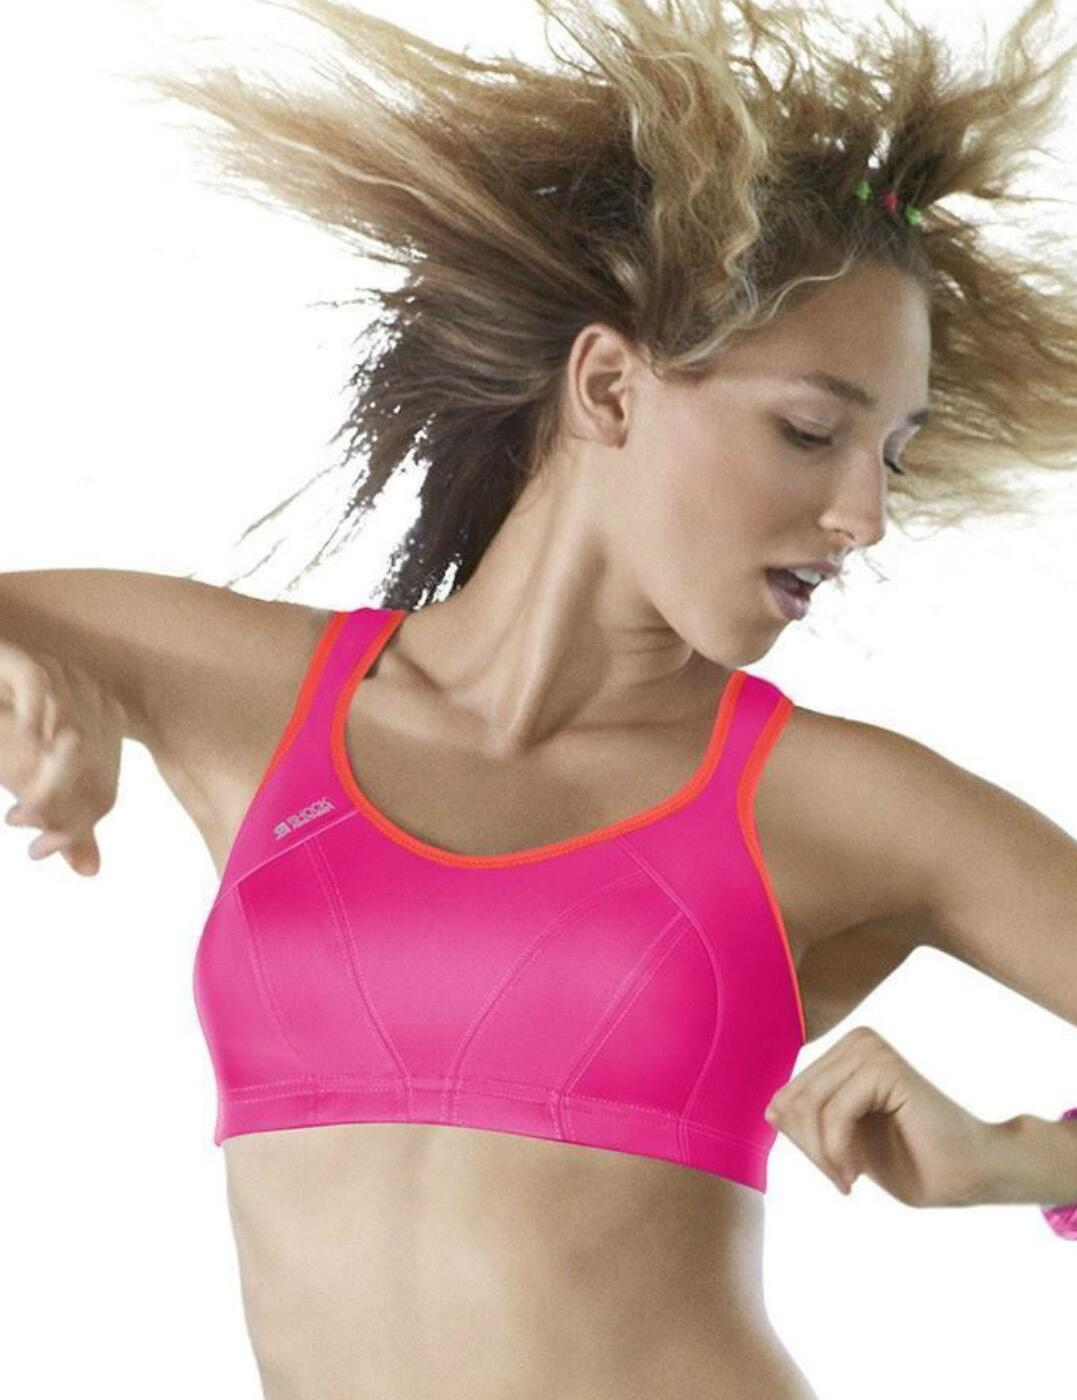 S4490 Shock Absorber High Impact Sports Bra - S4490 Pink/Coral